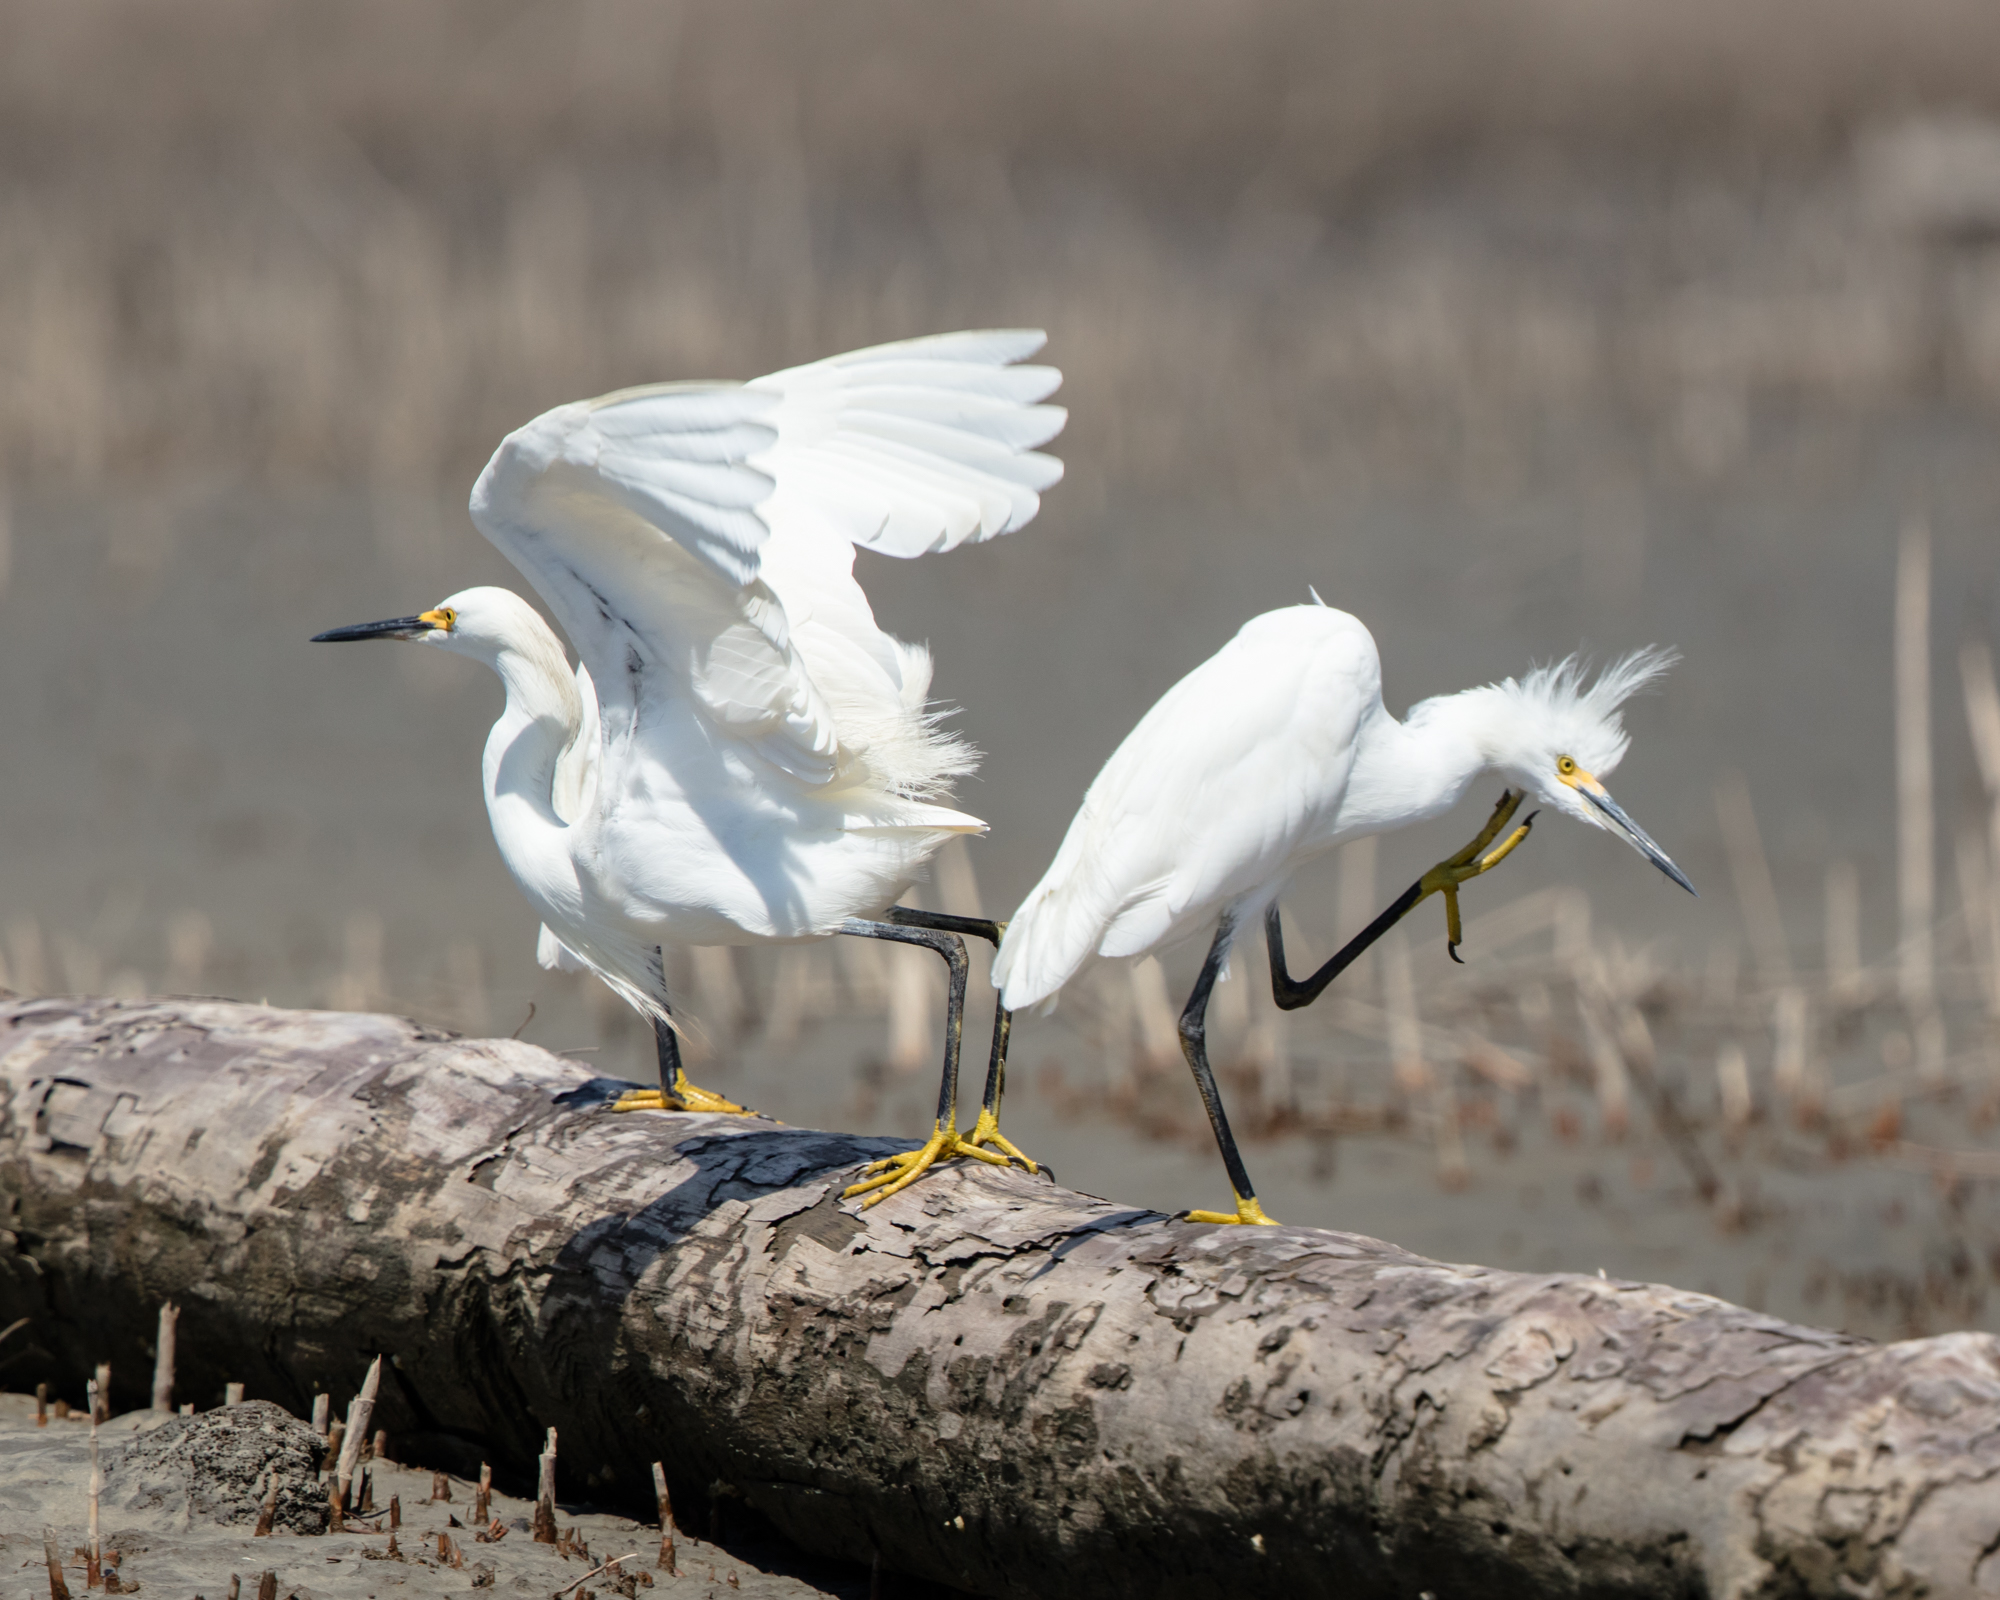 Snowy egrets playing and preening after the tide went out in the salt marsh on Hunting Island.